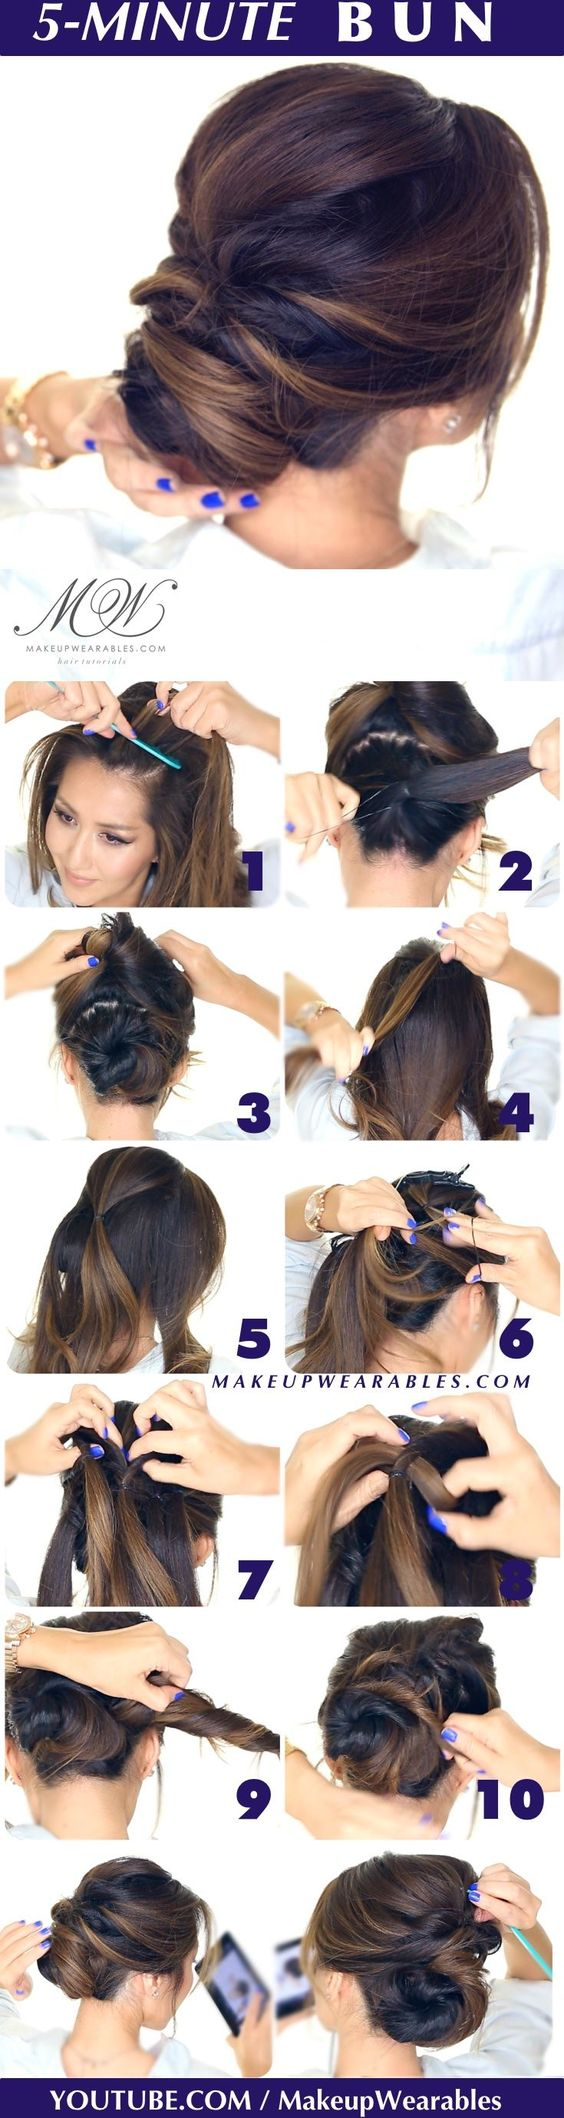 16 Easy Updo Hair Tutorials For The Season Pretty Designs